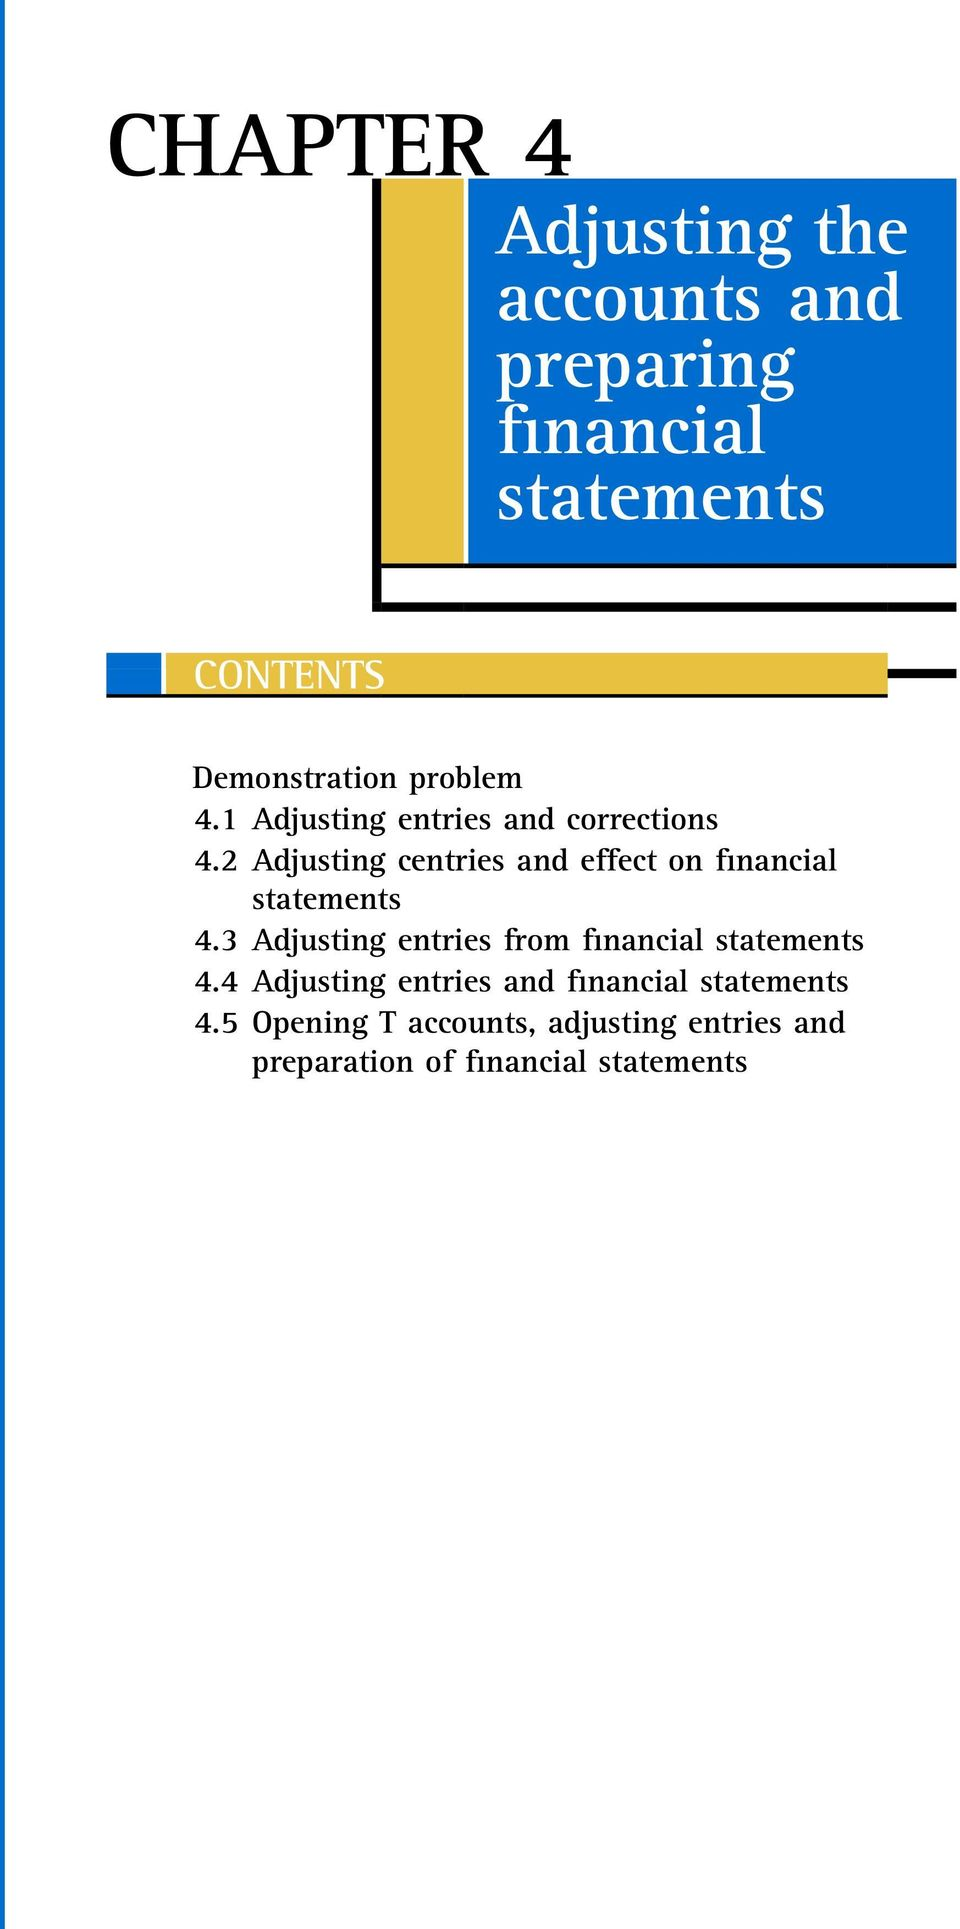 2 Adjusting centries and effect on financial statements 4.